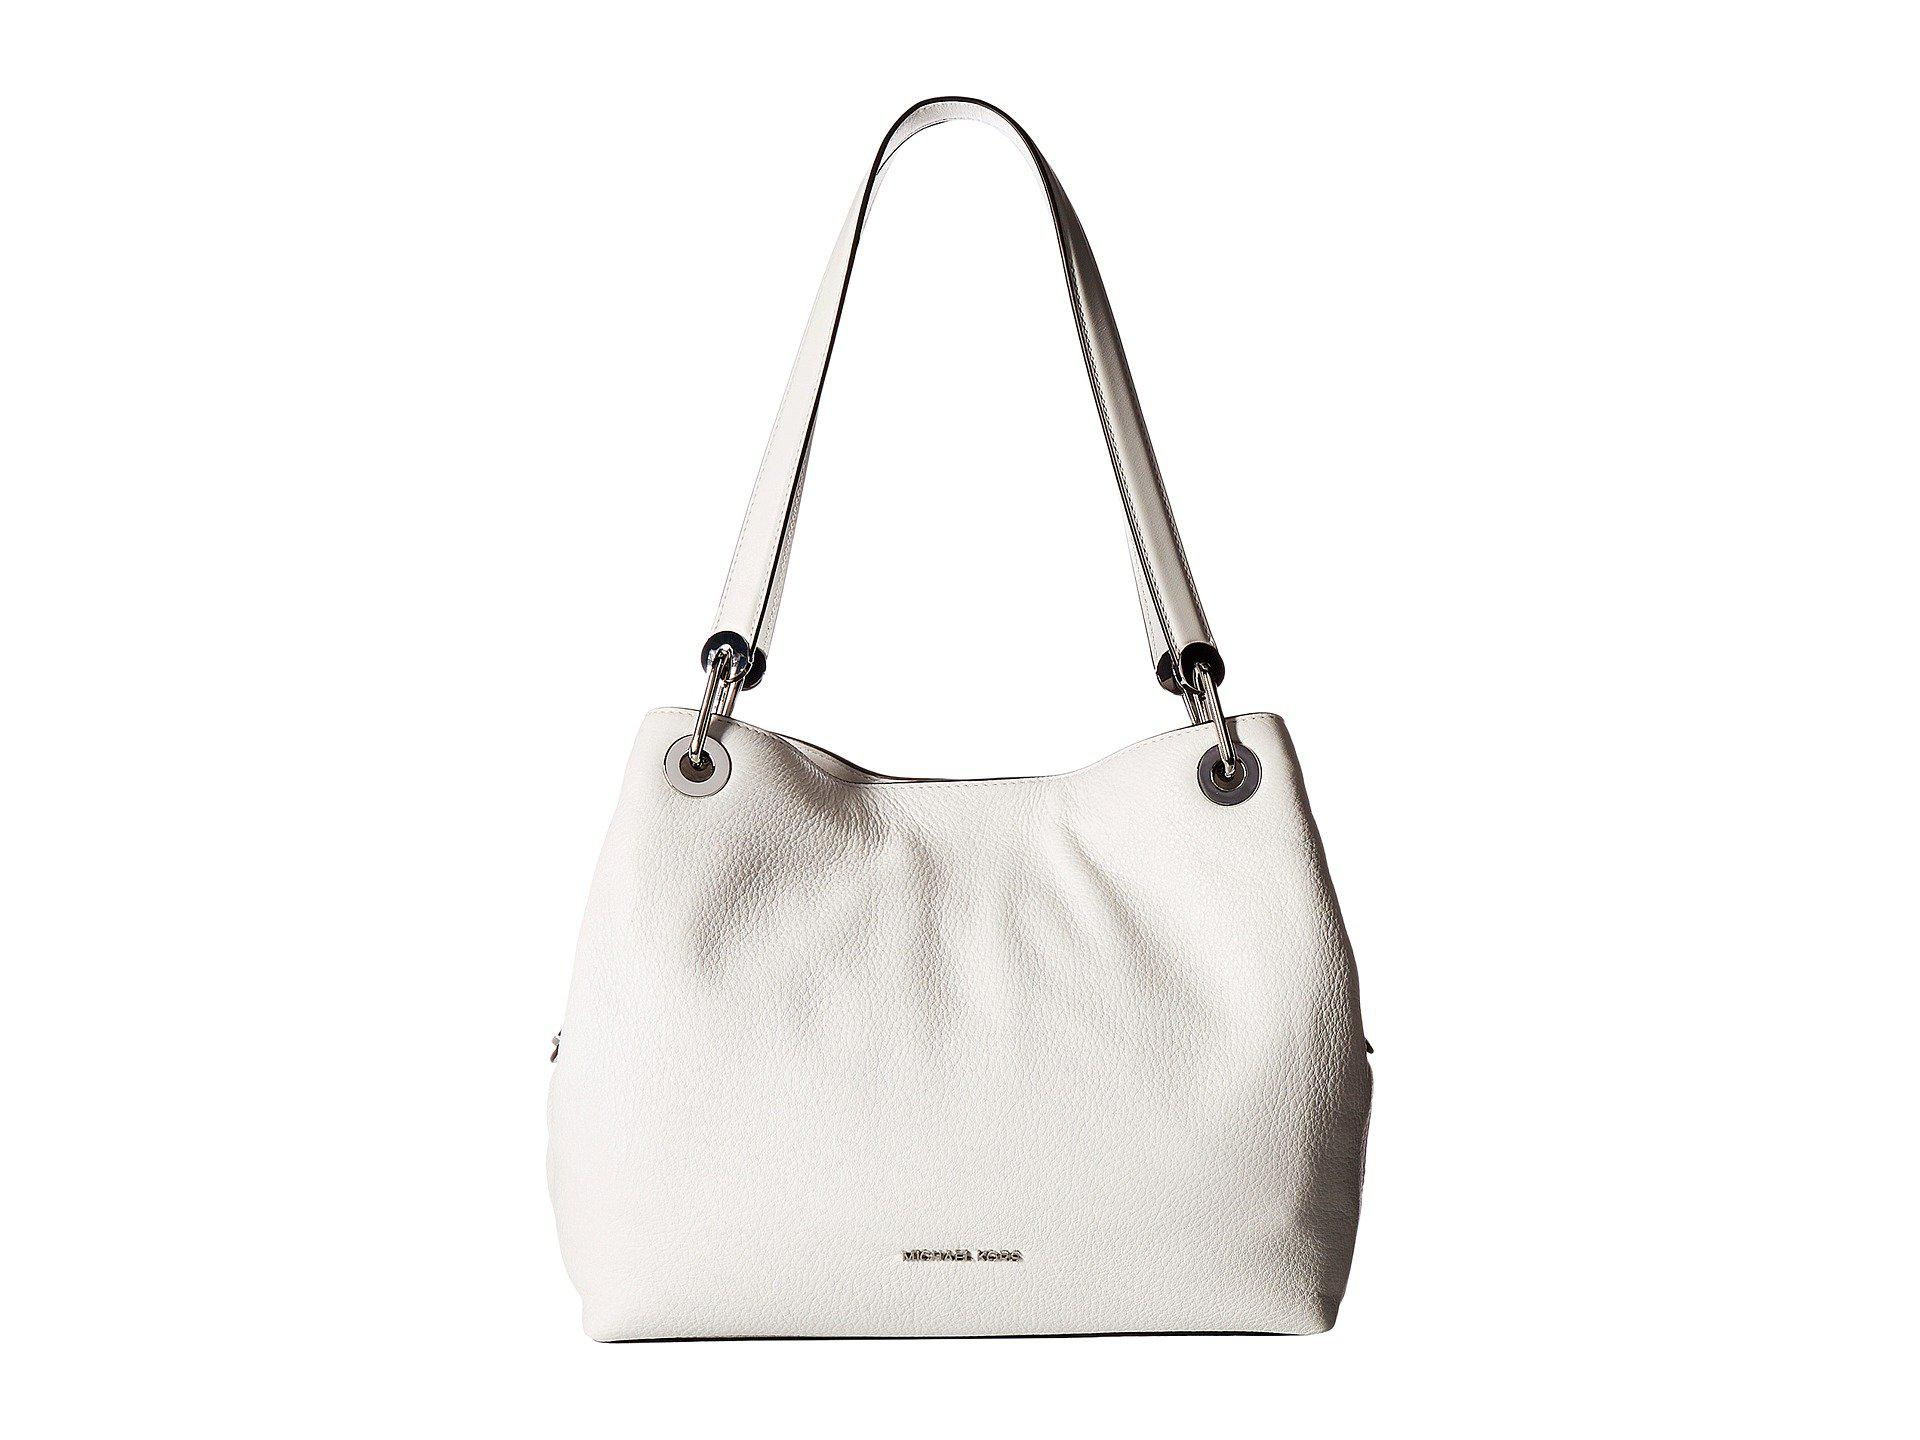 Raven Large Shoulder Tote Bag in Optic White Small Pebble Leather Michael Michael Kors iDQyUiWC